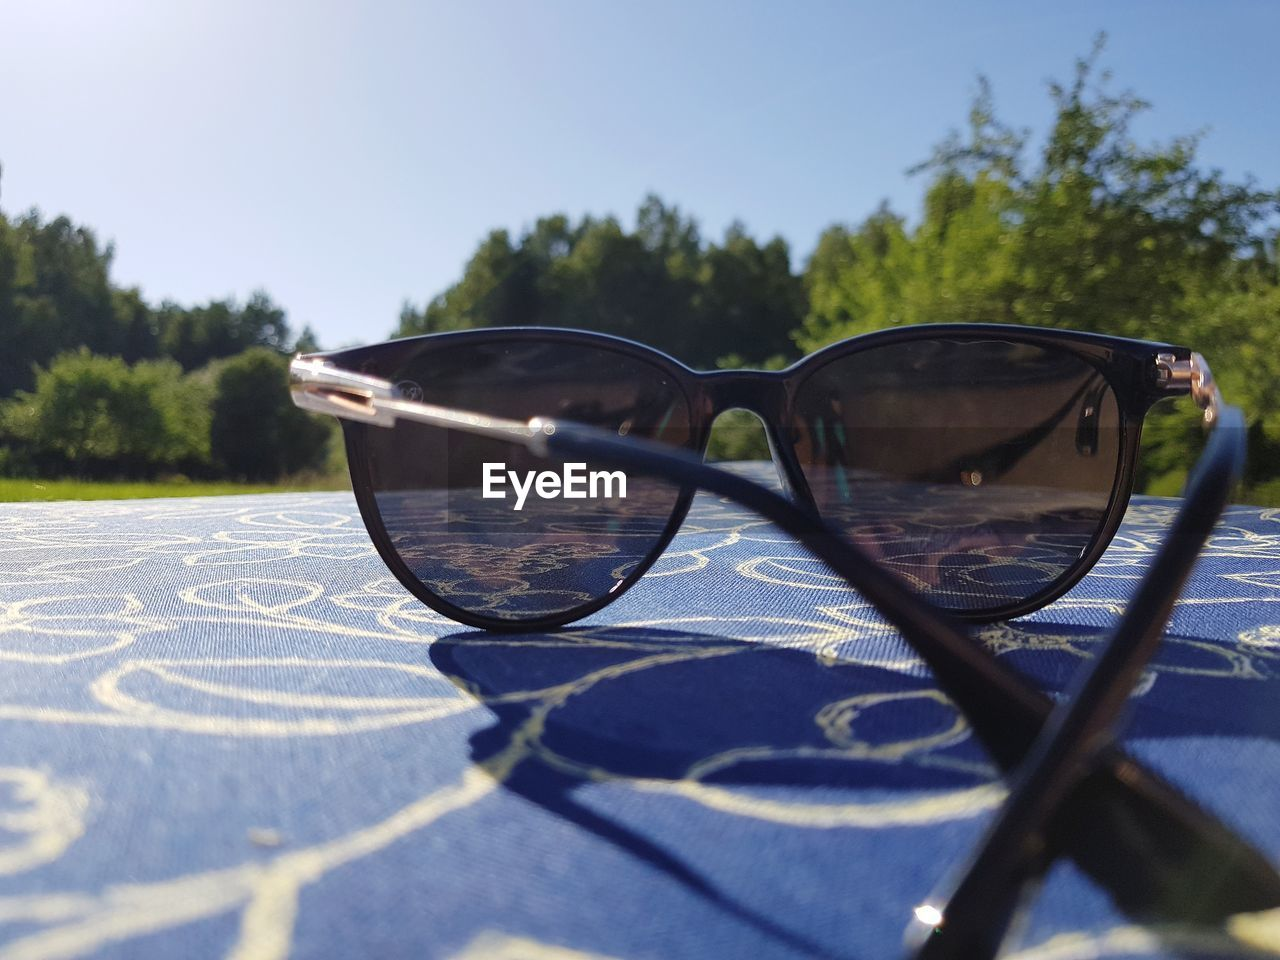 glasses, sunglasses, sunlight, nature, day, eyeglasses, close-up, tree, sky, fashion, plant, personal accessory, selective focus, no people, outdoors, glass - material, shadow, leisure activity, focus on foreground, blue, eyewear, surface level